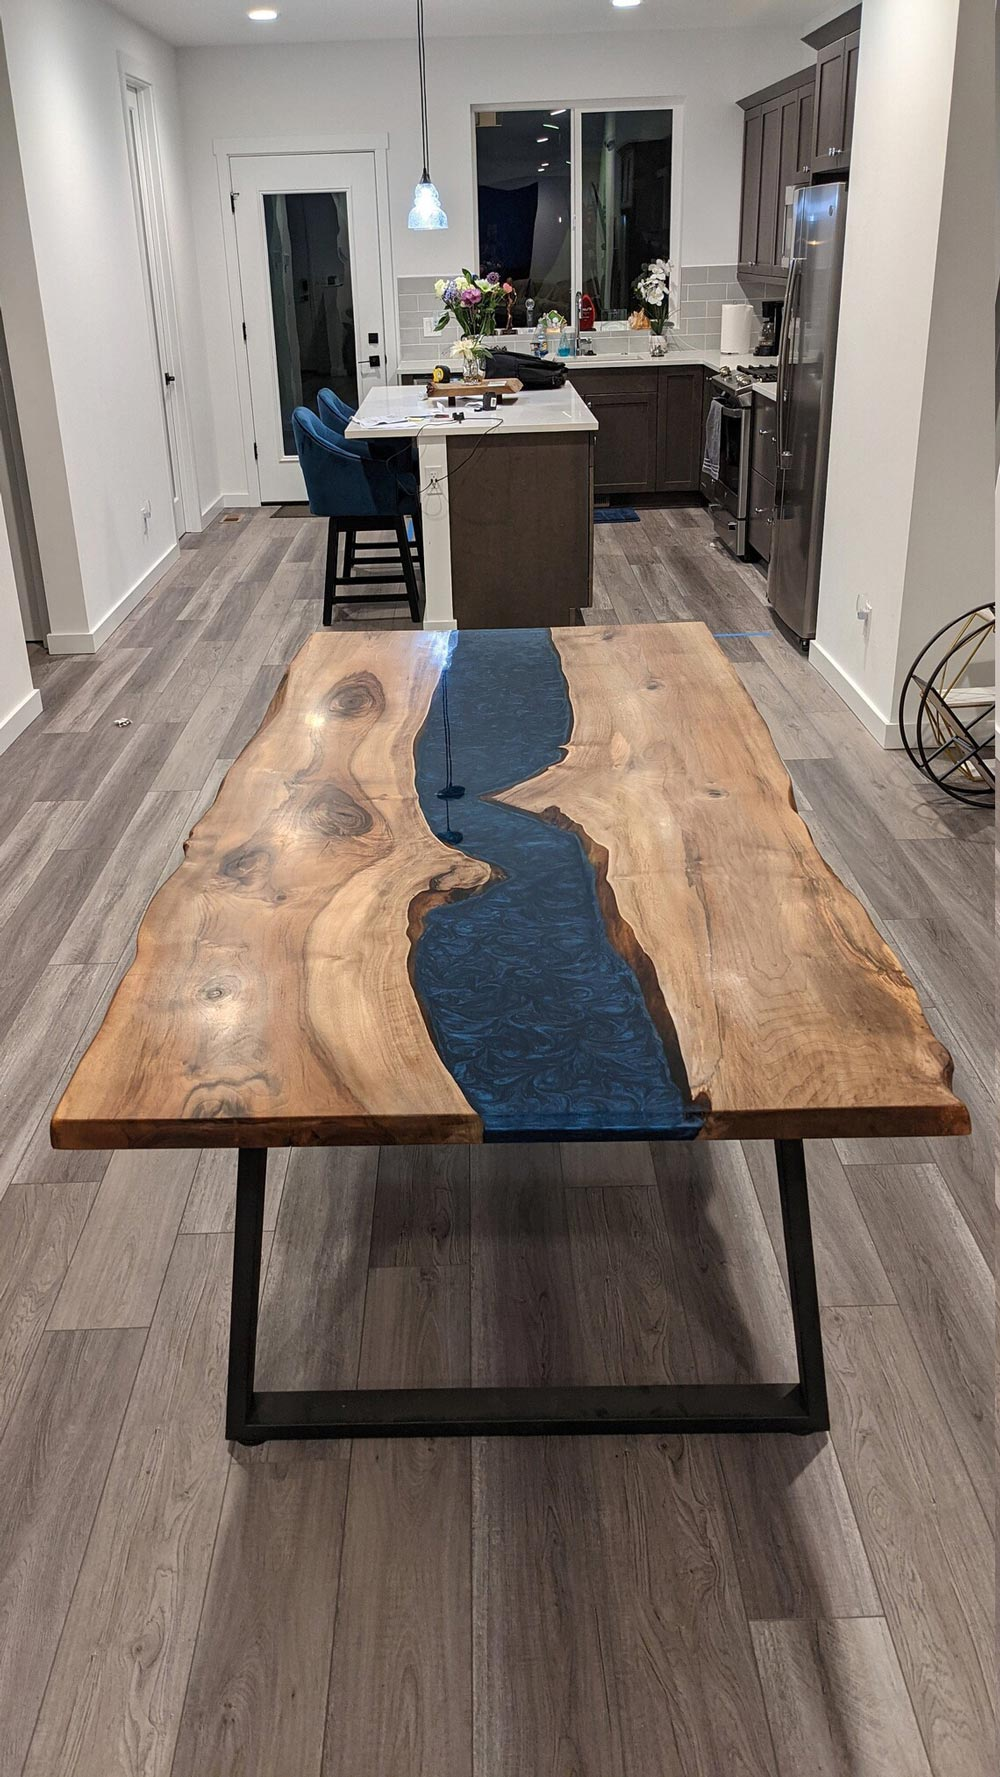 Live Edge Epoxy Dining Table - made of walnut wood and epoxy resin